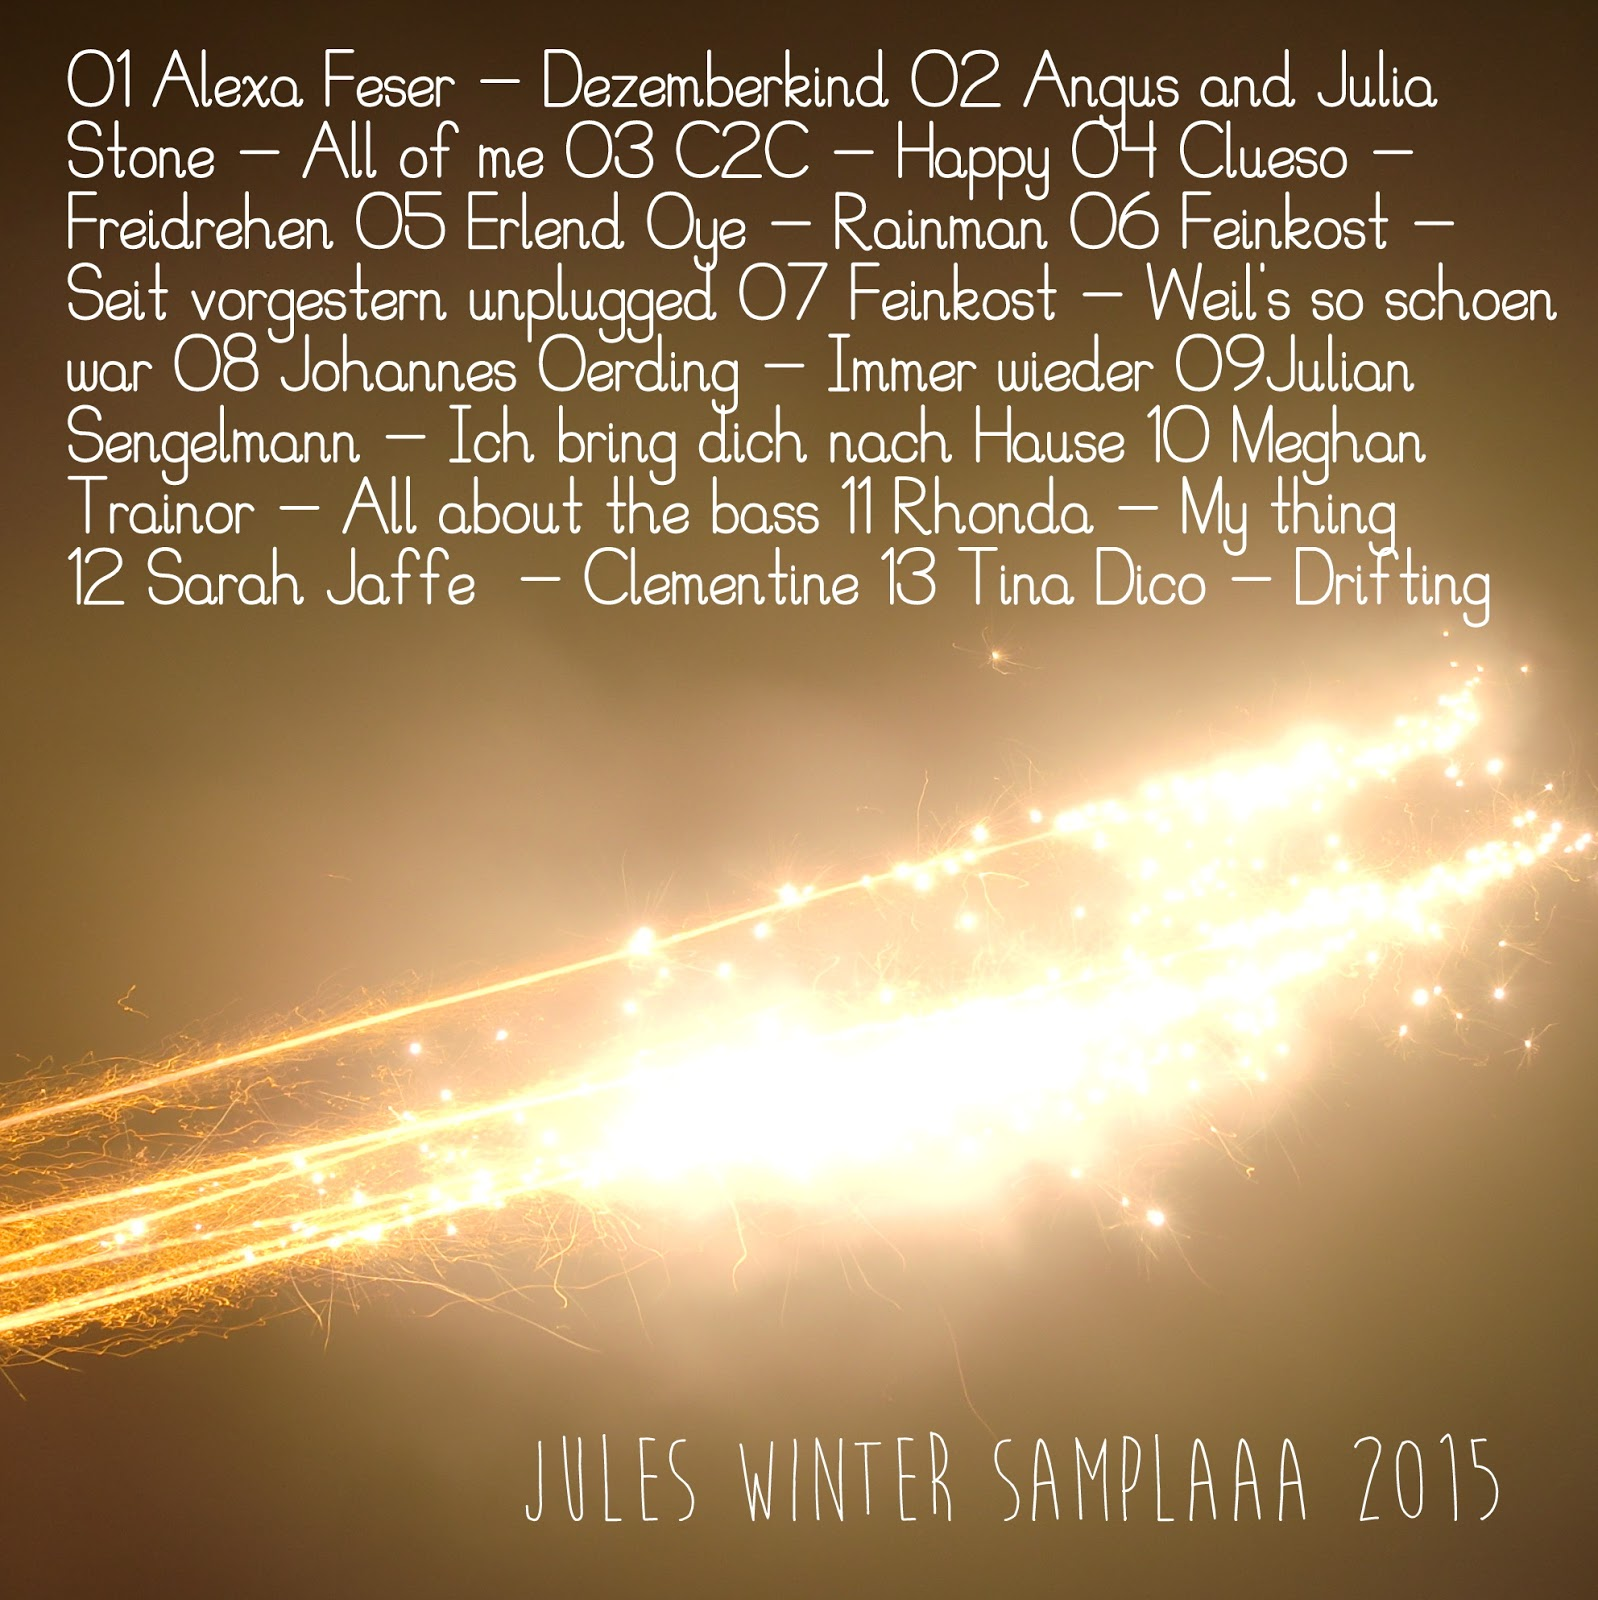 Jules Winter Samplaaa 2015 Playlist